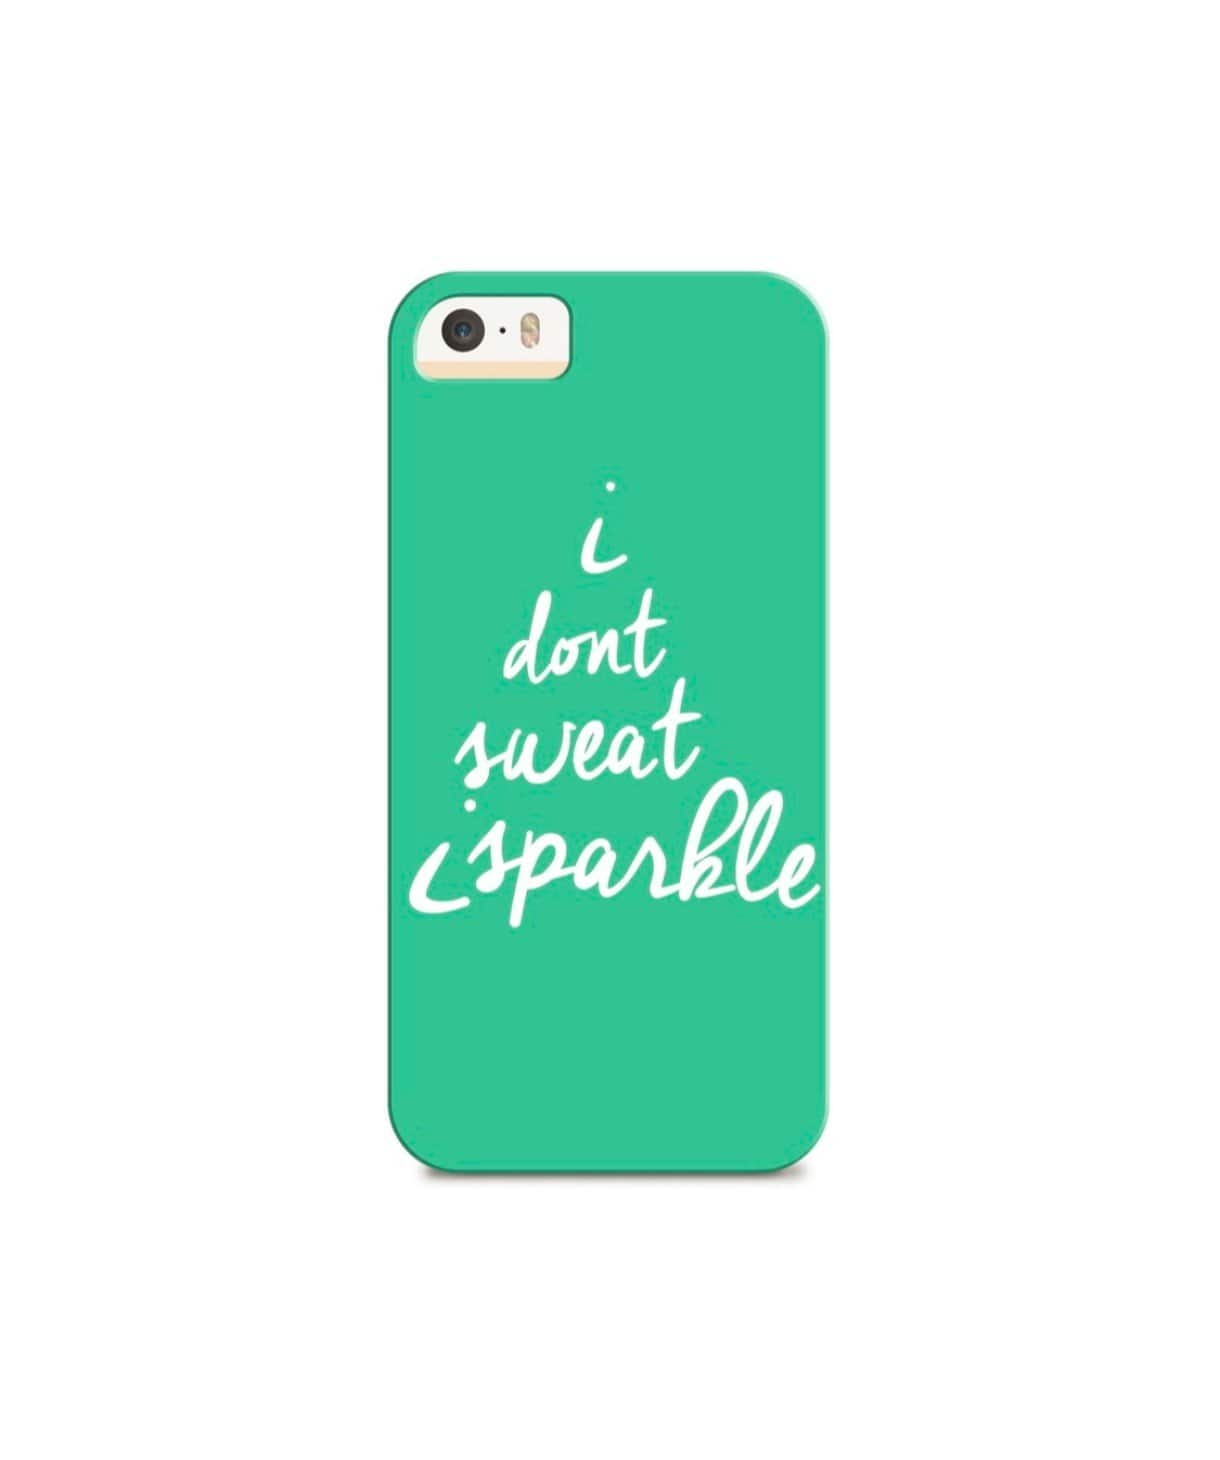 I Sparkle IPhone Cover (Personalisation Available) - Uptownie